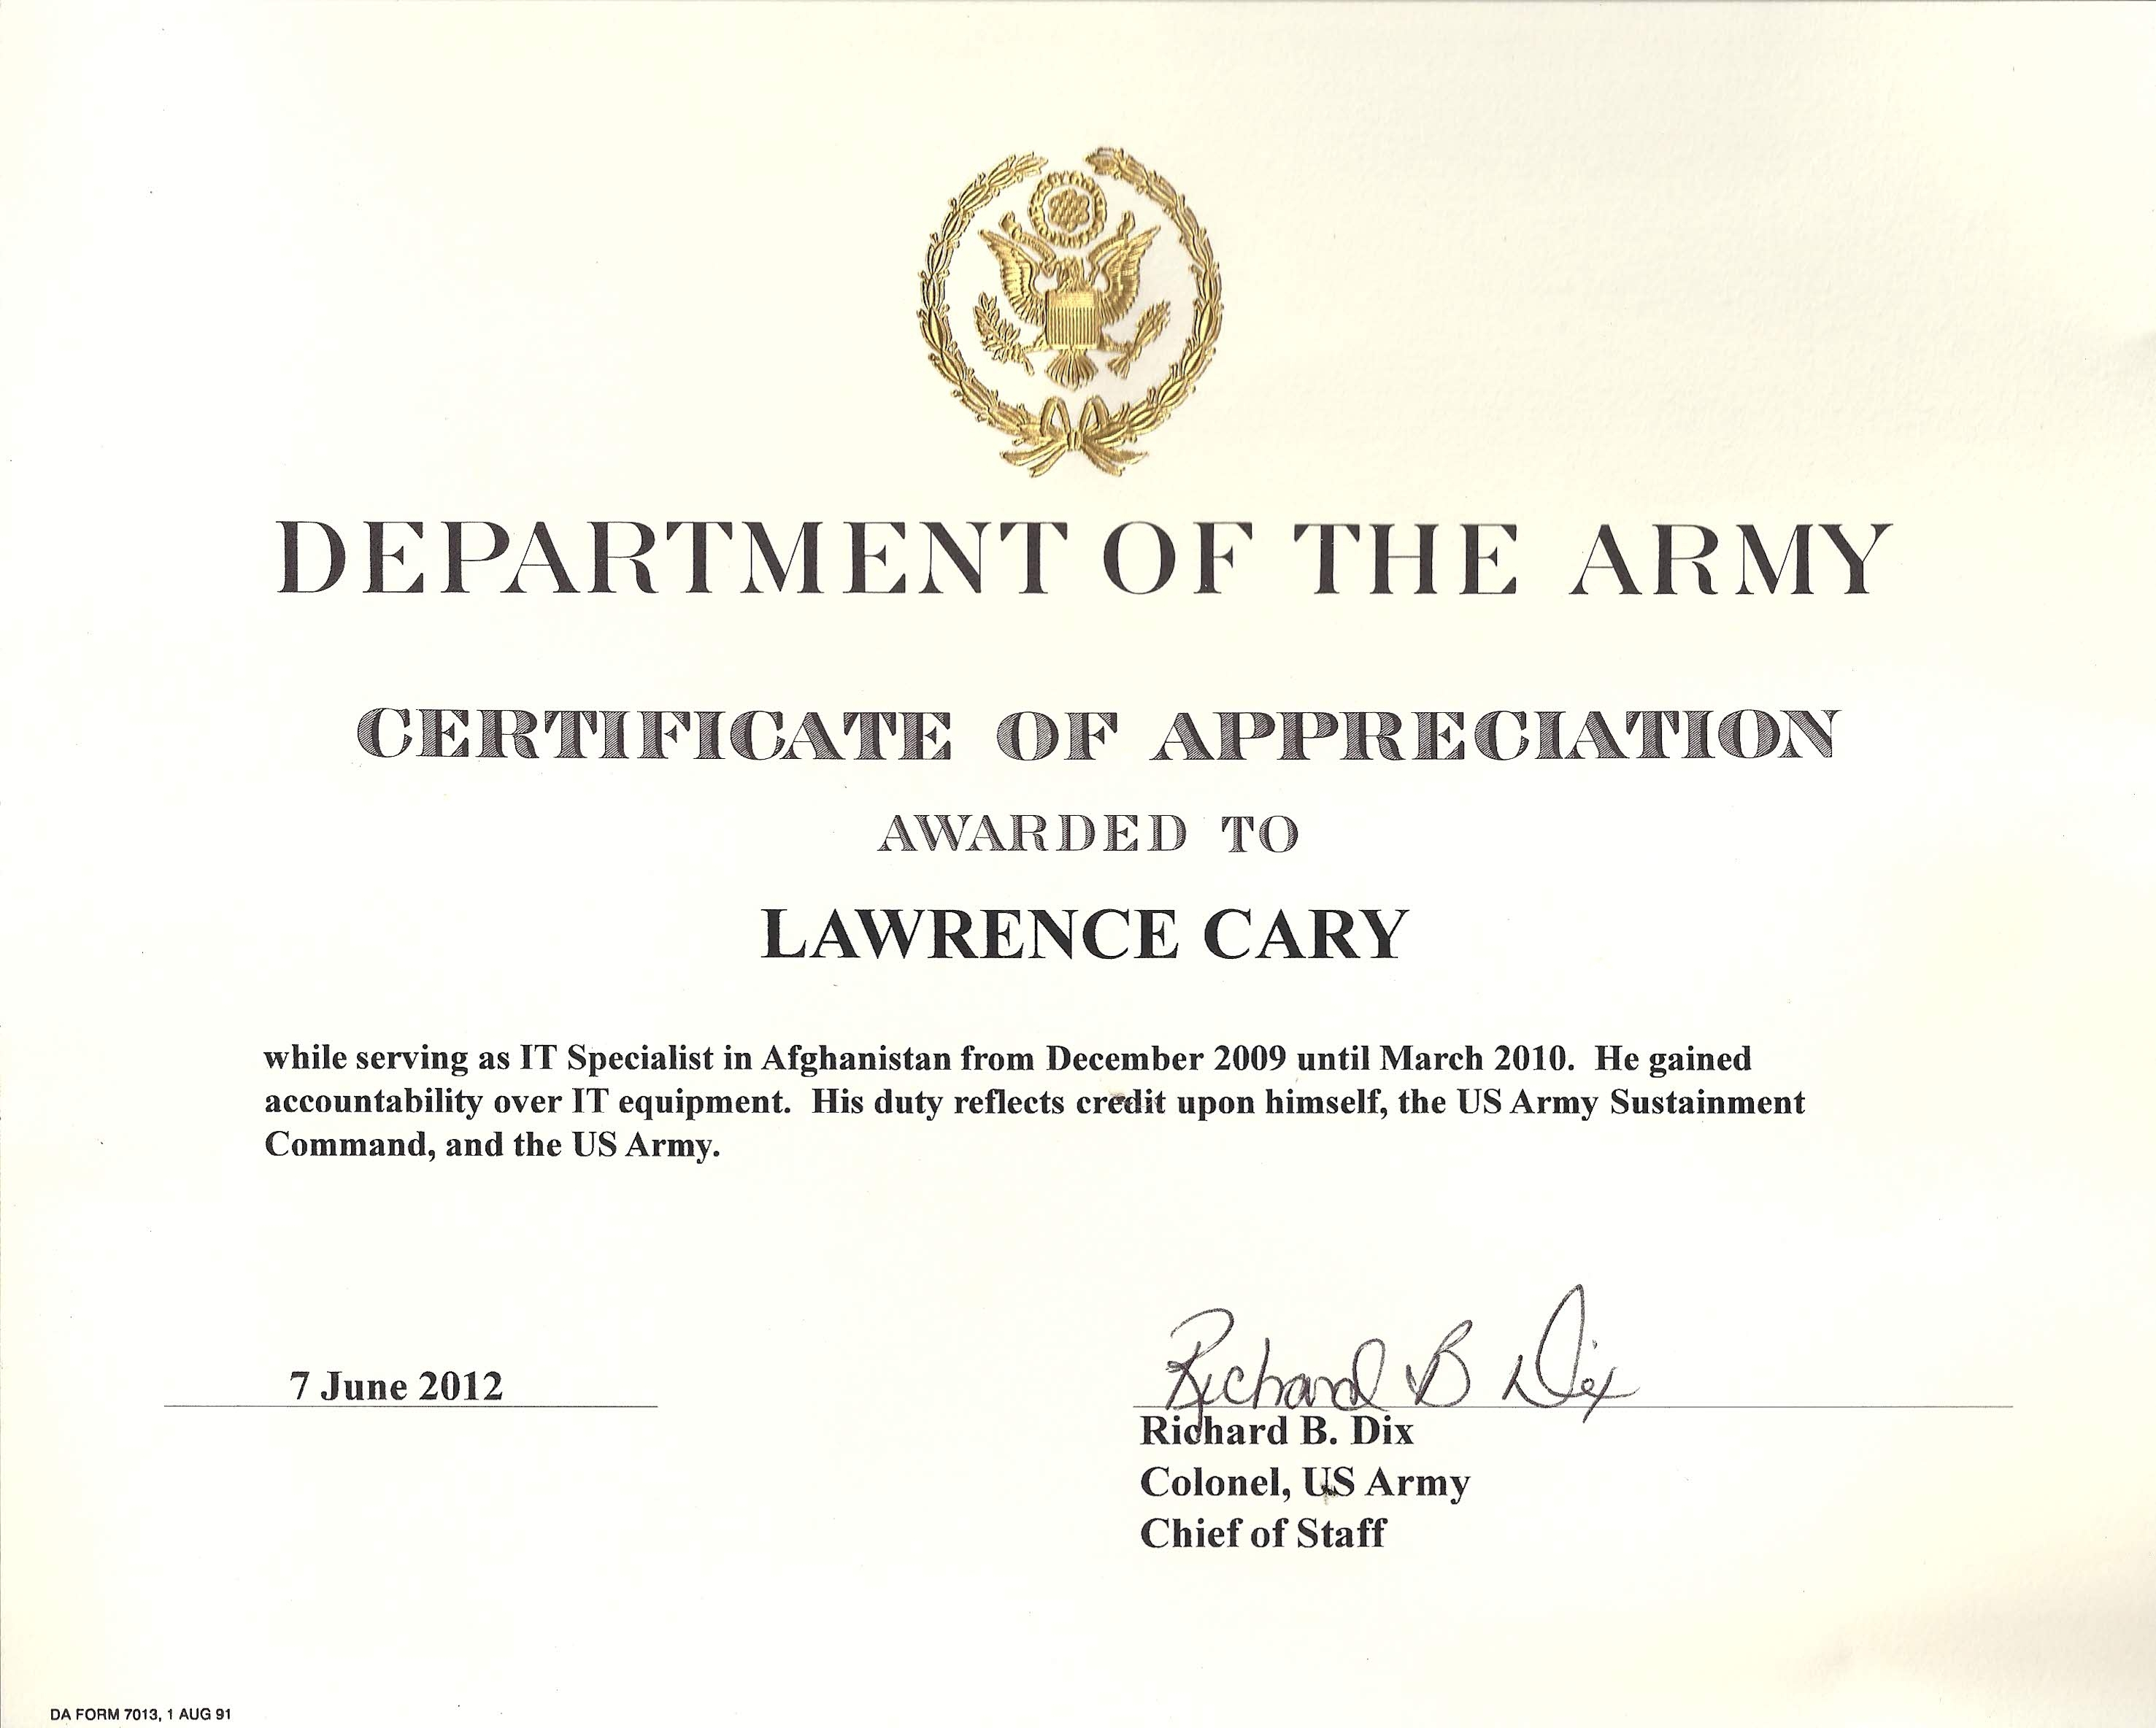 Army Certificate Of Completion Template - Atlantaauctionco For Army Certificate Of Completion Template